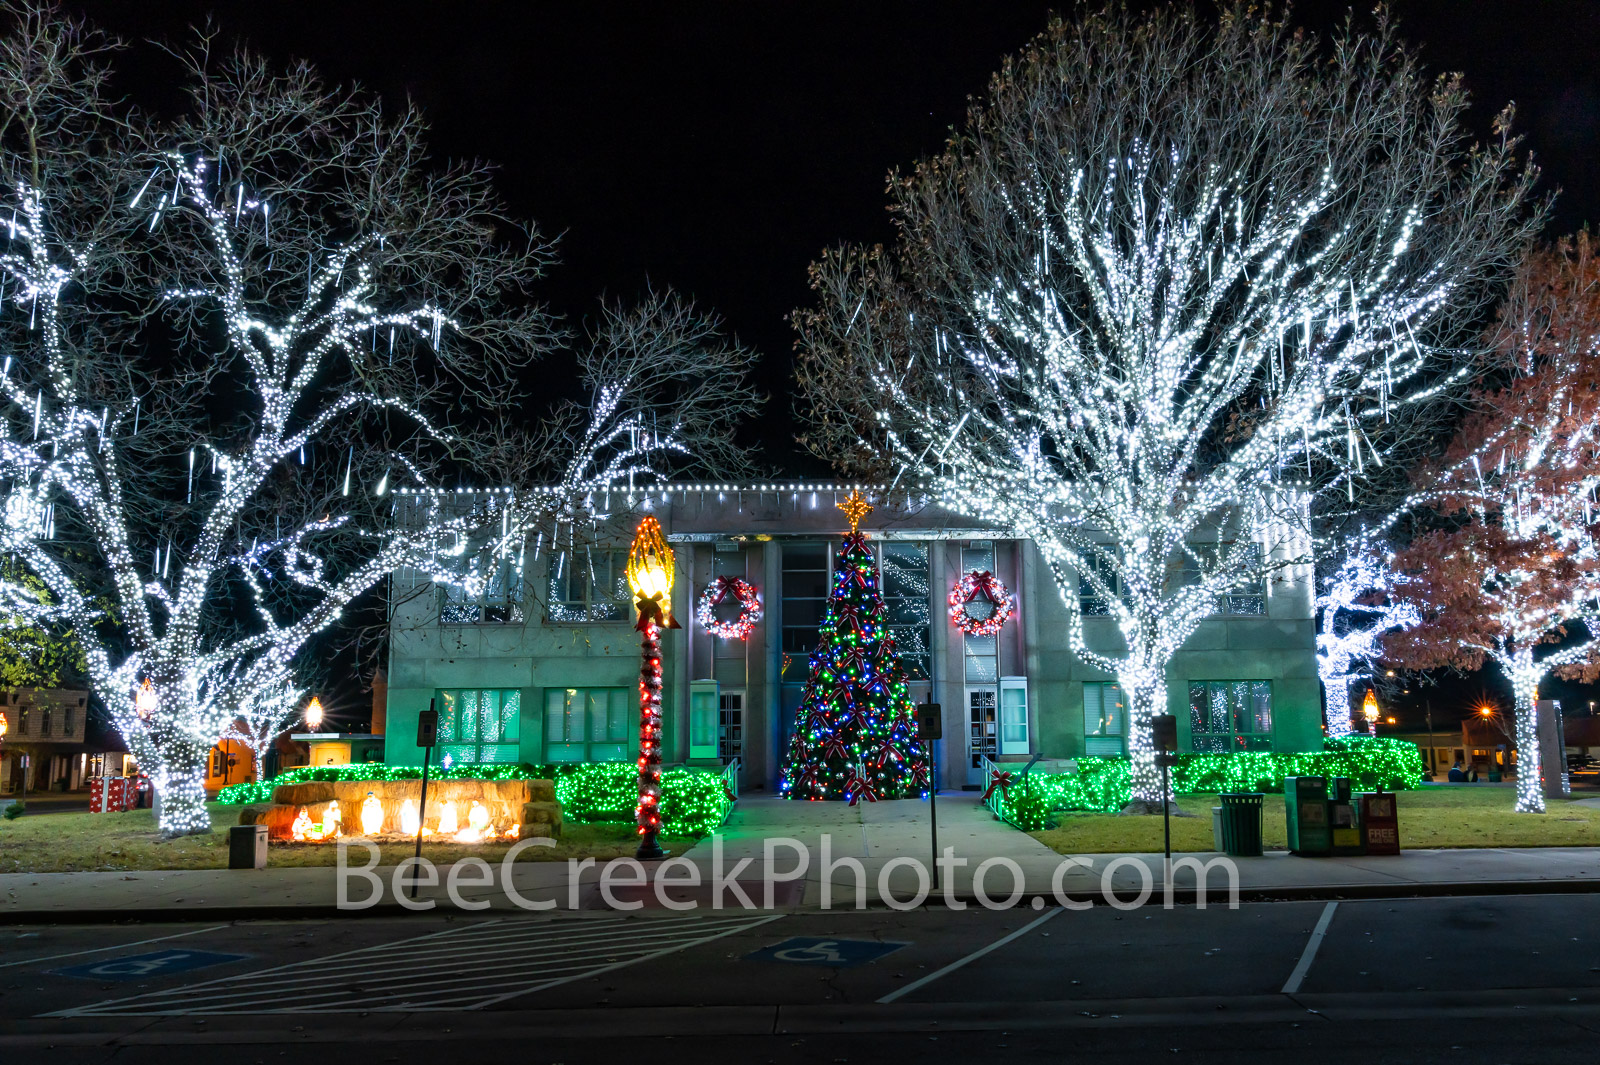 Burnet County Courthouse Christmas  - Burnet County Courthouse at Christmas with the holiday decorations at the town square....